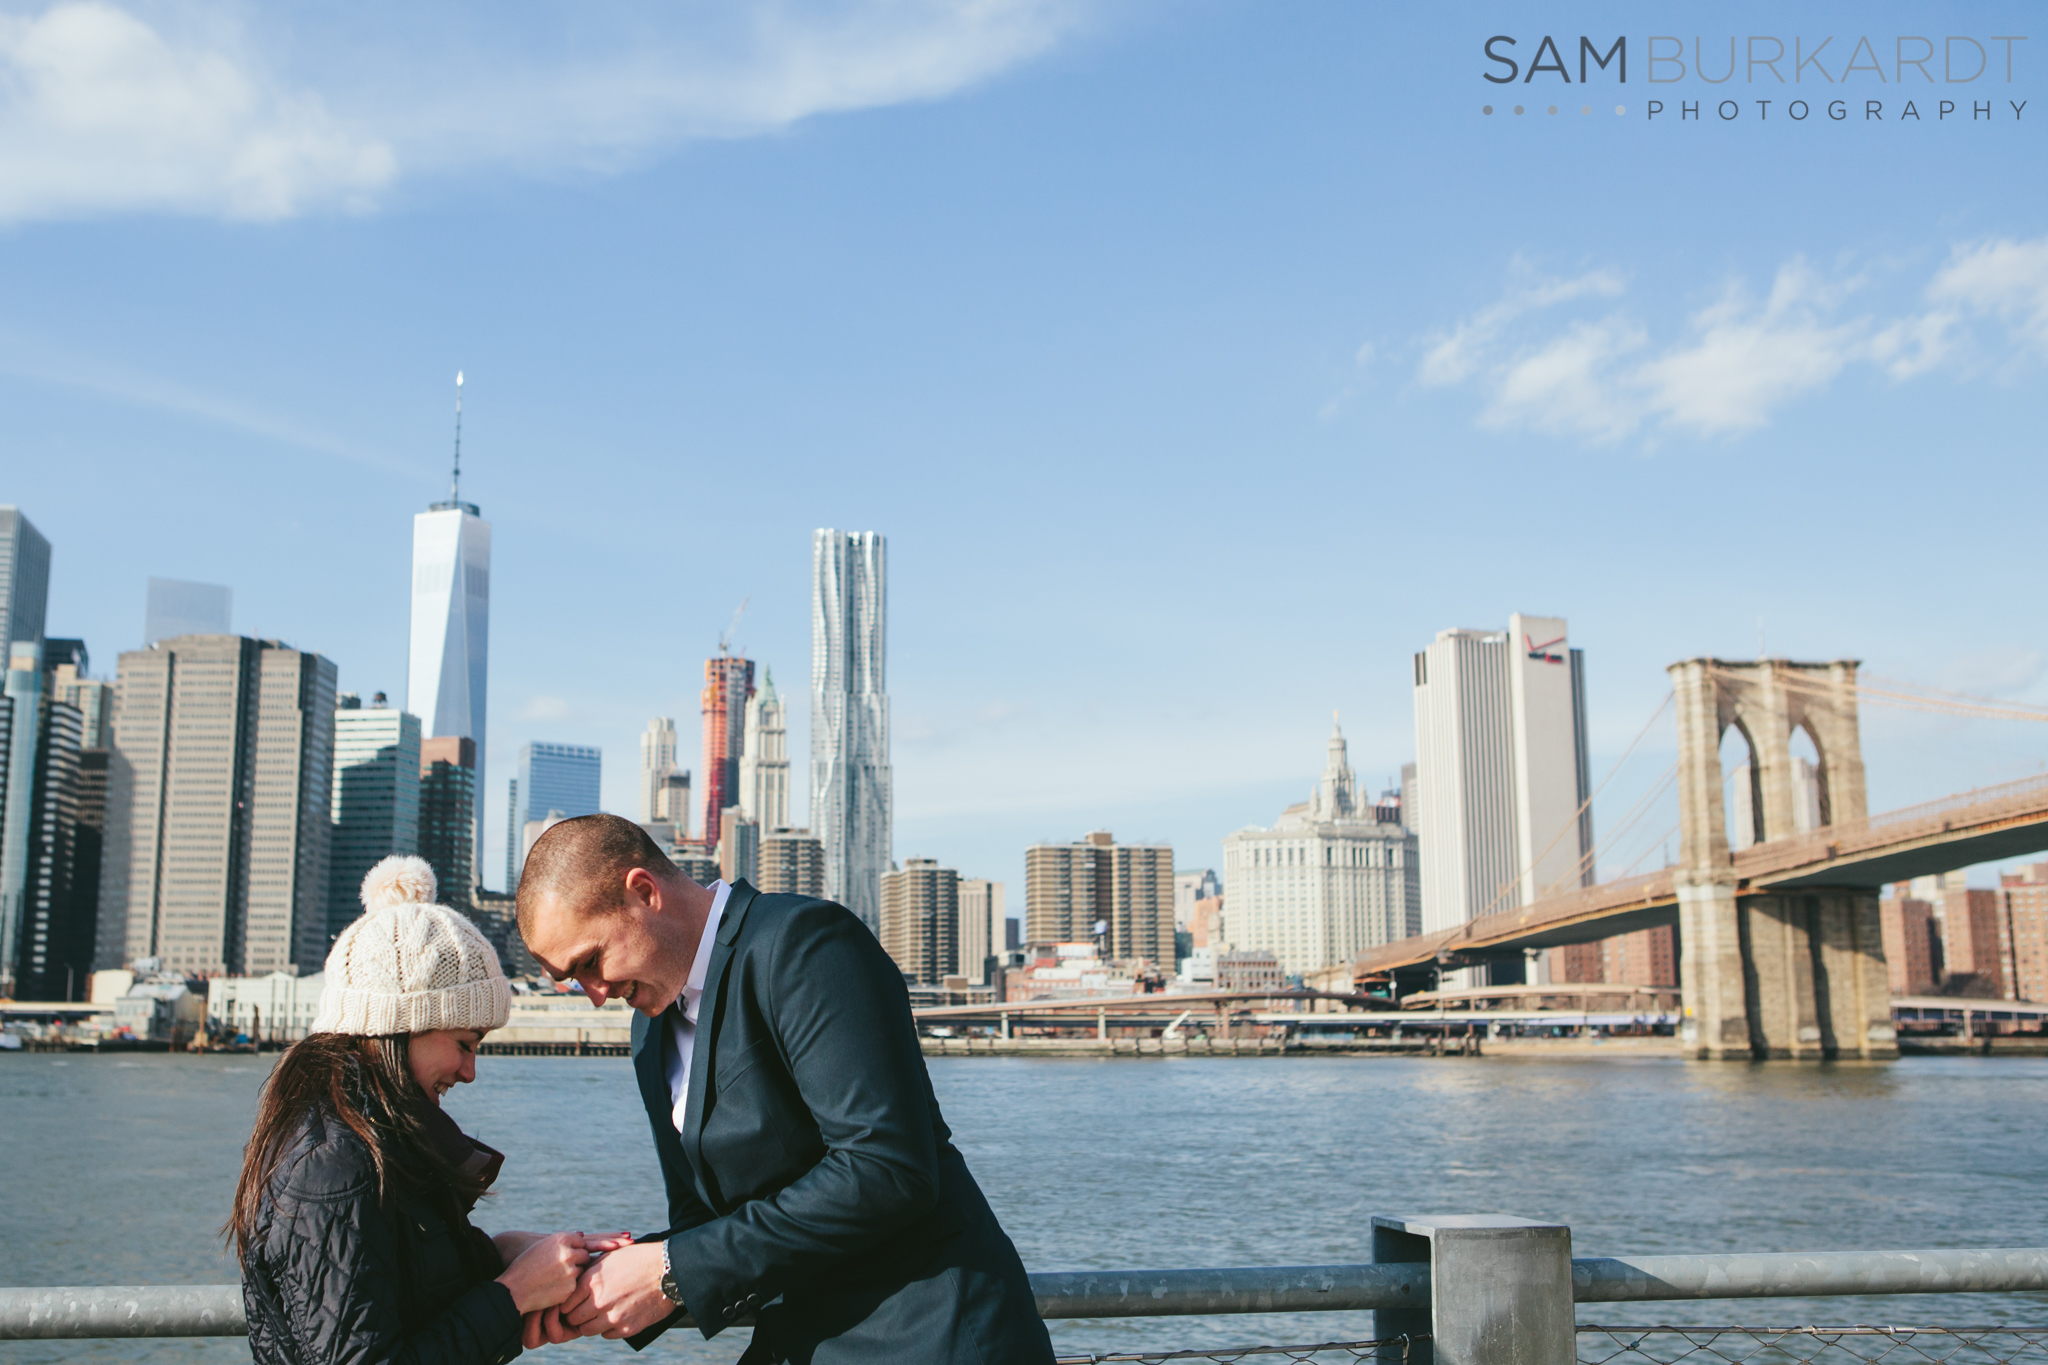 samburkardt_brooklyn_bridge_new_york_engagement_proposal_skyline_0011.jpg